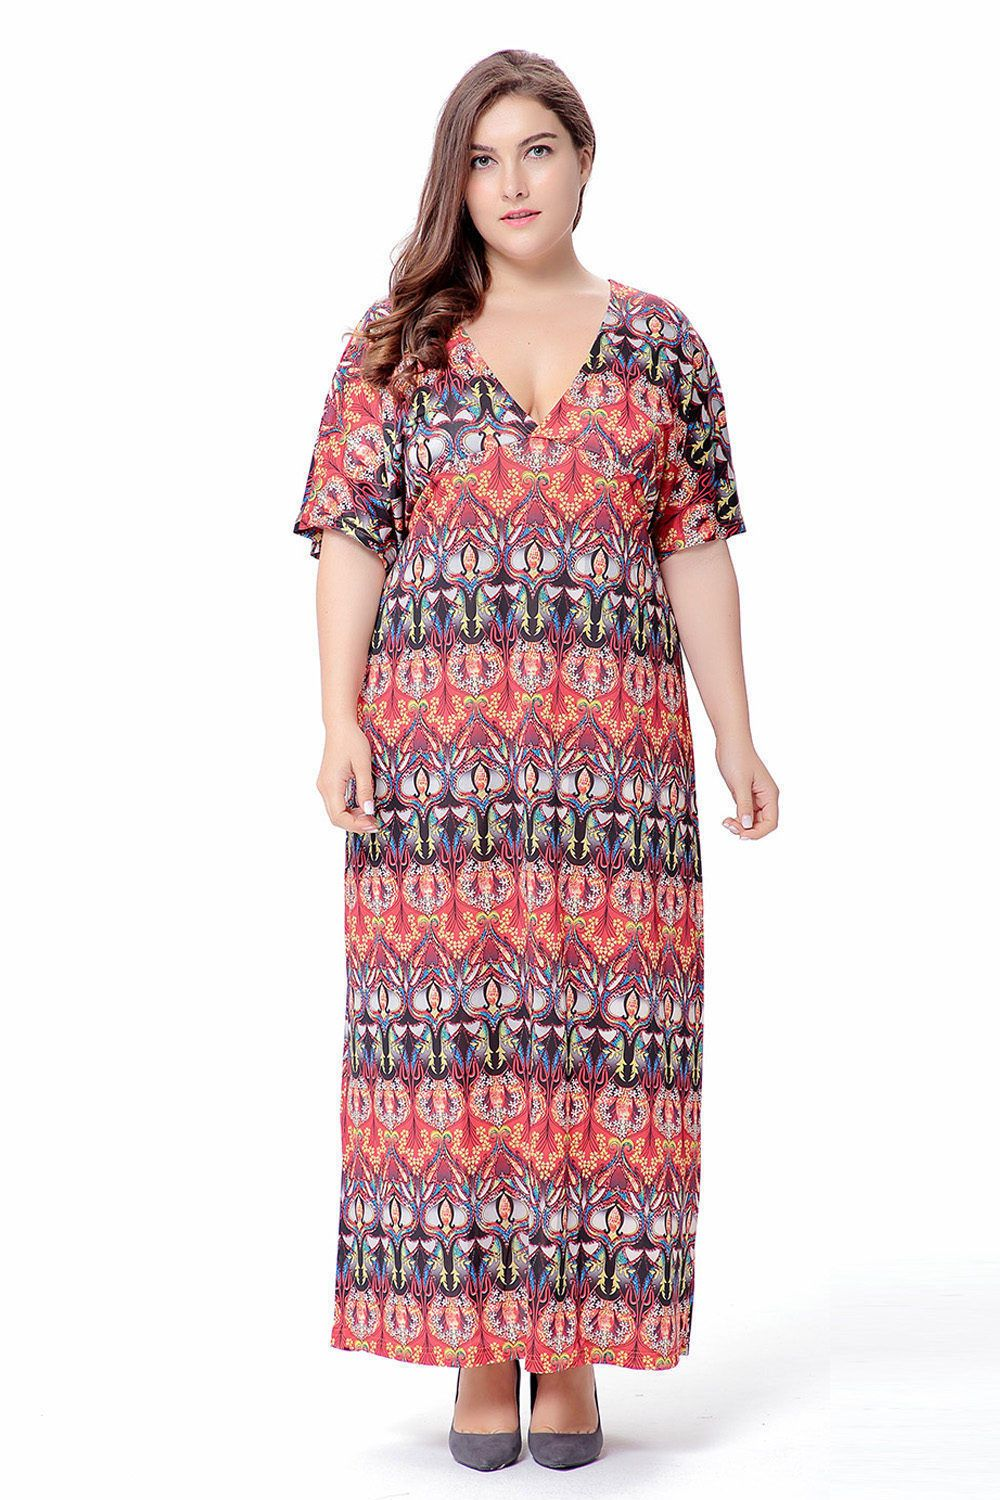 Fashion women plus size short sleeve loose dress cocktail party maxi